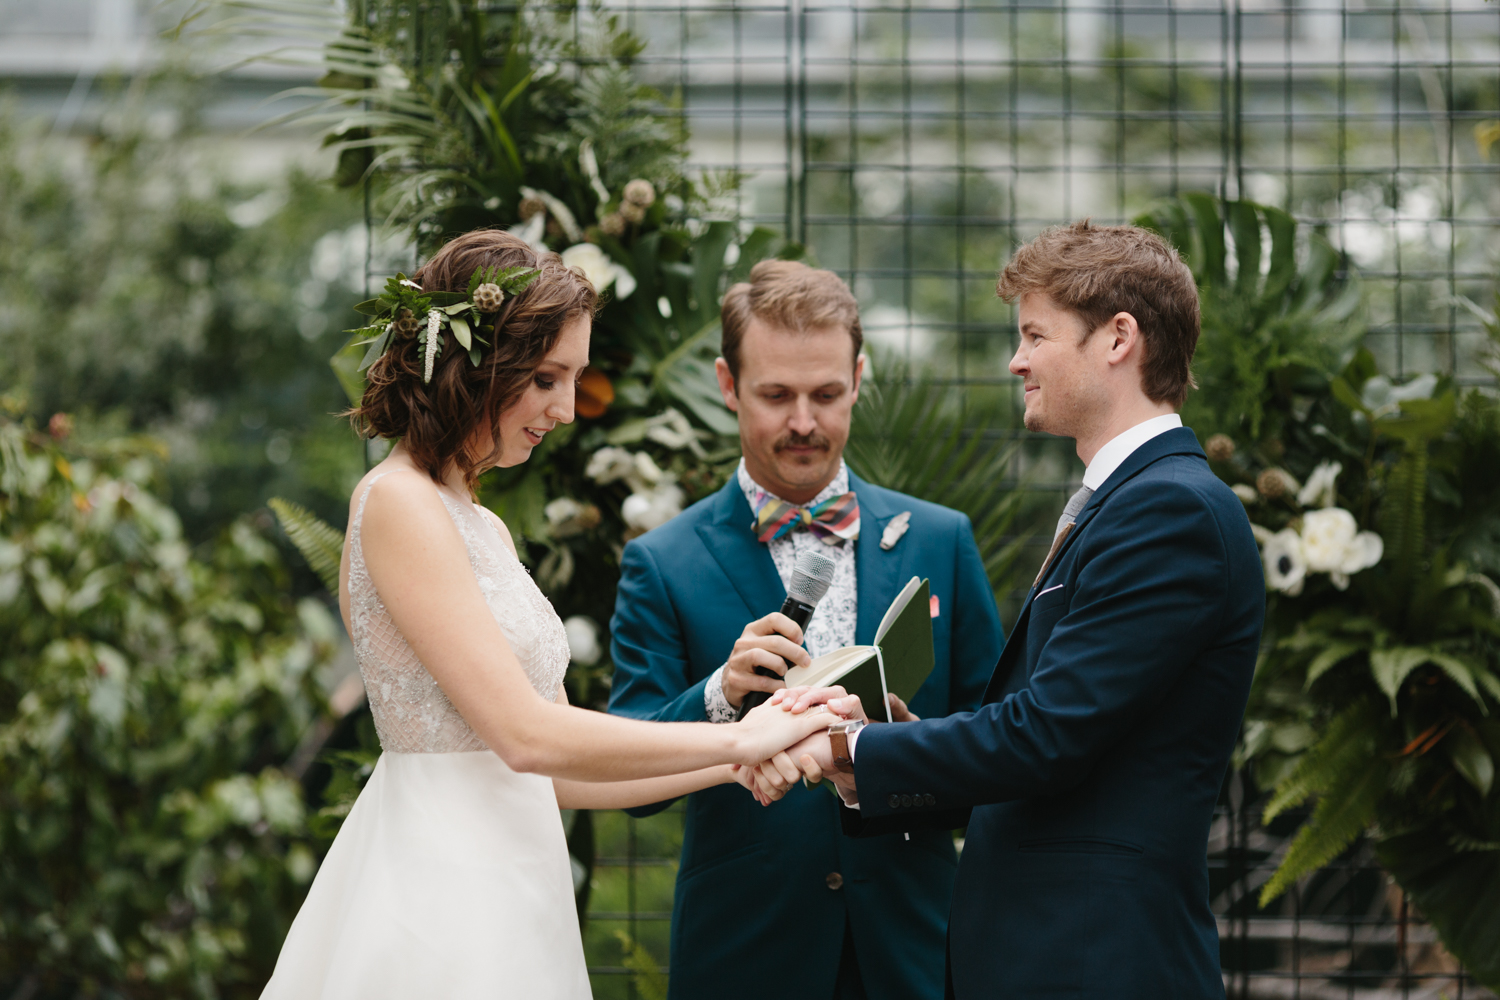 Chicago Garfield Park Conservatory Wedding by Northern Michigan Photographer Mae Stier-066.jpg